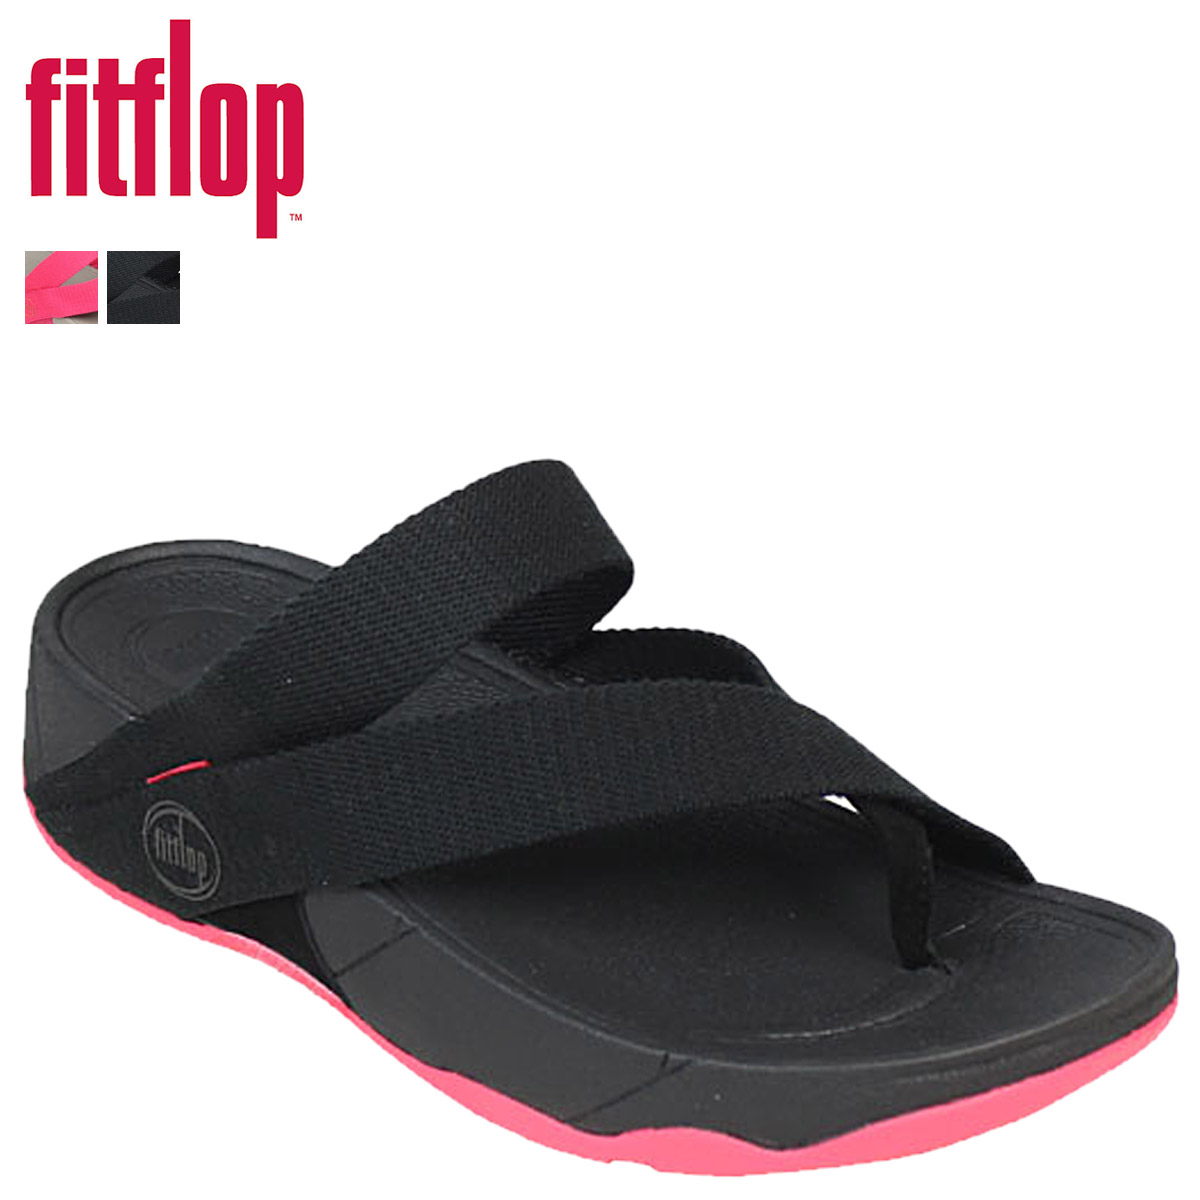 23dc73f6122 ... the density put a diverse focus on the first fit flop sandals. New  generation footwear brand revolutionized the modern shoe industry does not  understand ...